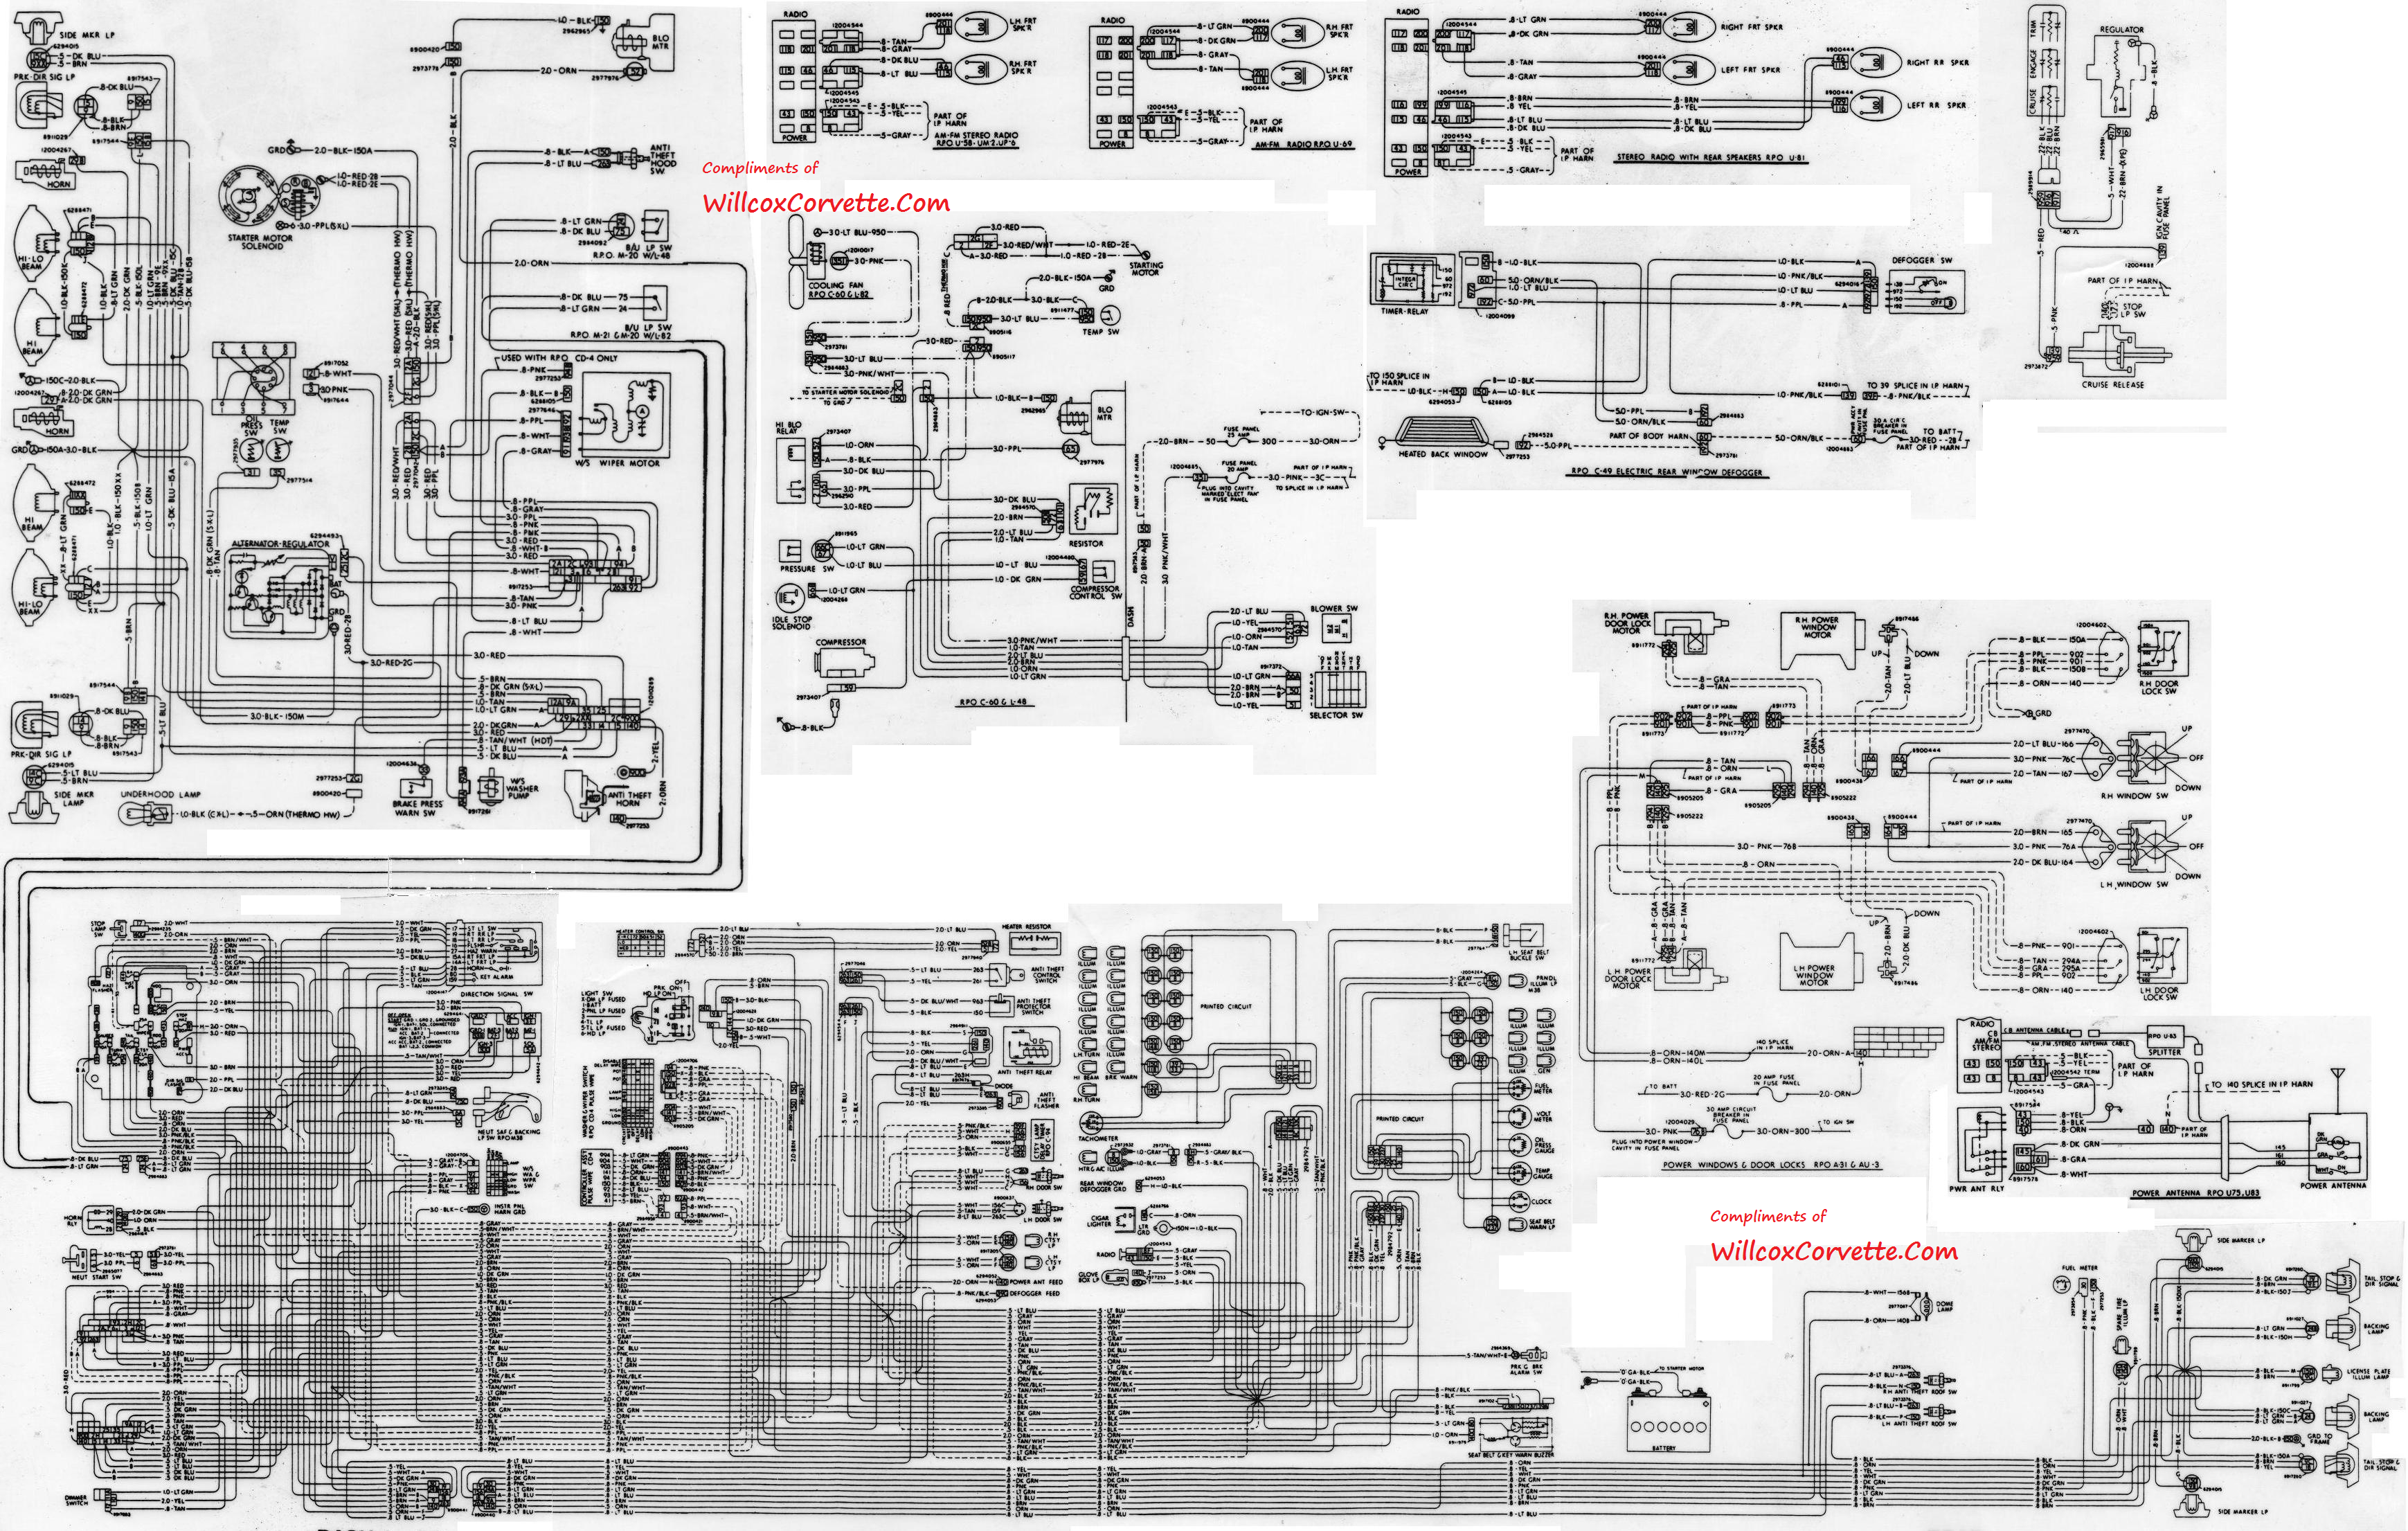 79 COMBINED TRACER SCHEMATIC 1979 wiring diagram corvetteforum chevrolet corvette forum 1975 corvette wiring diagram at reclaimingppi.co